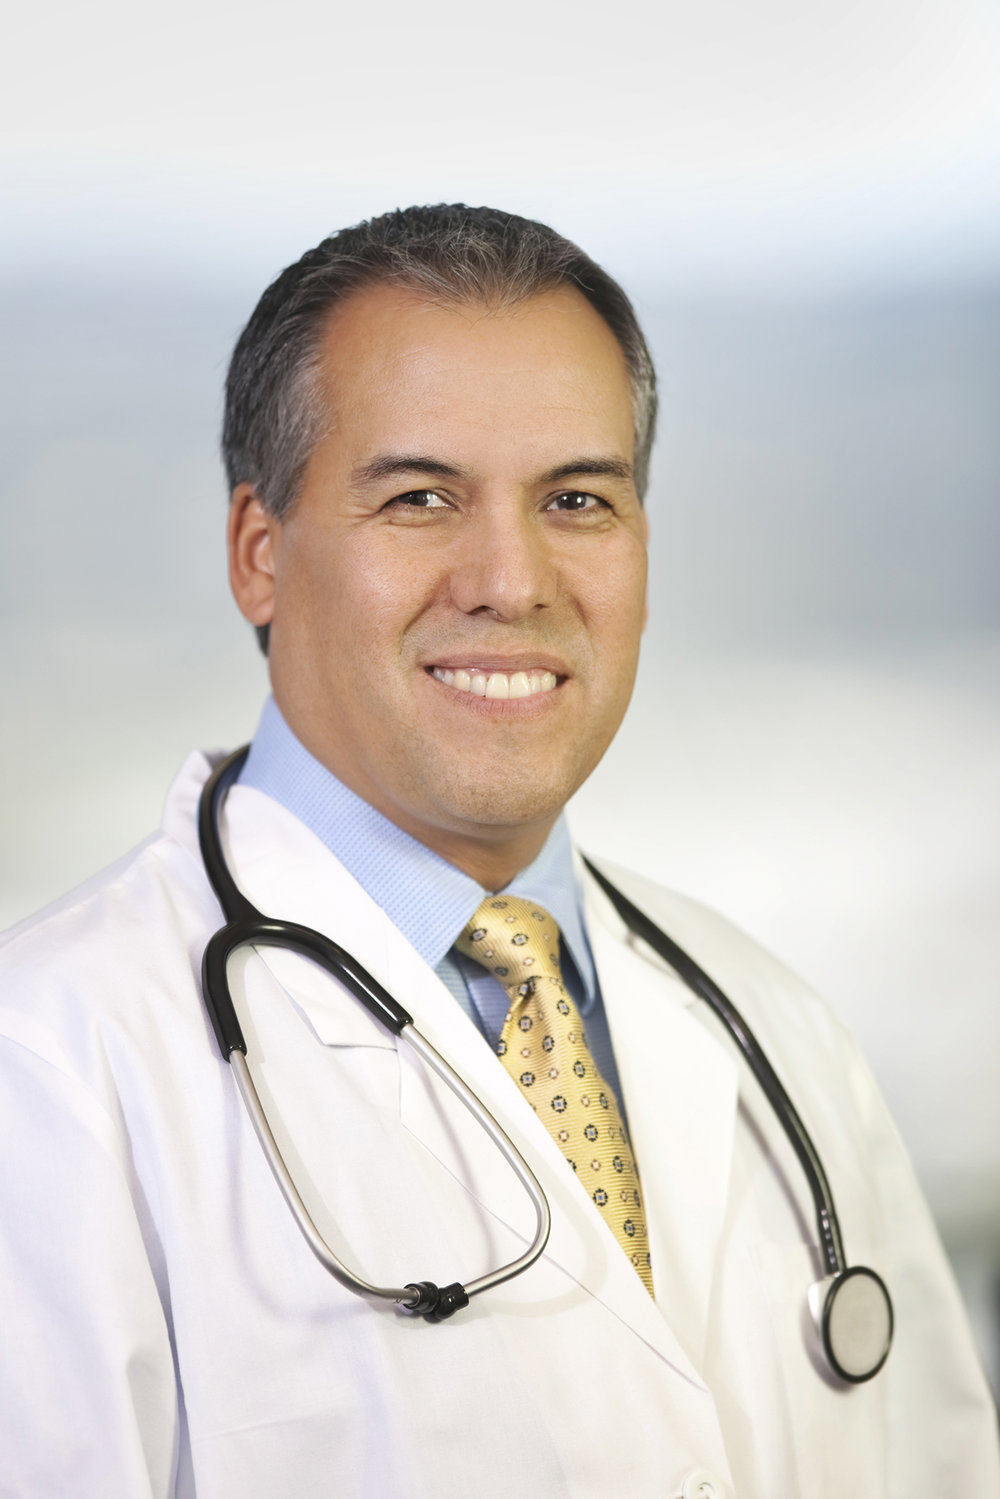 Headshot Portrait of Hispanic Medical Doctor